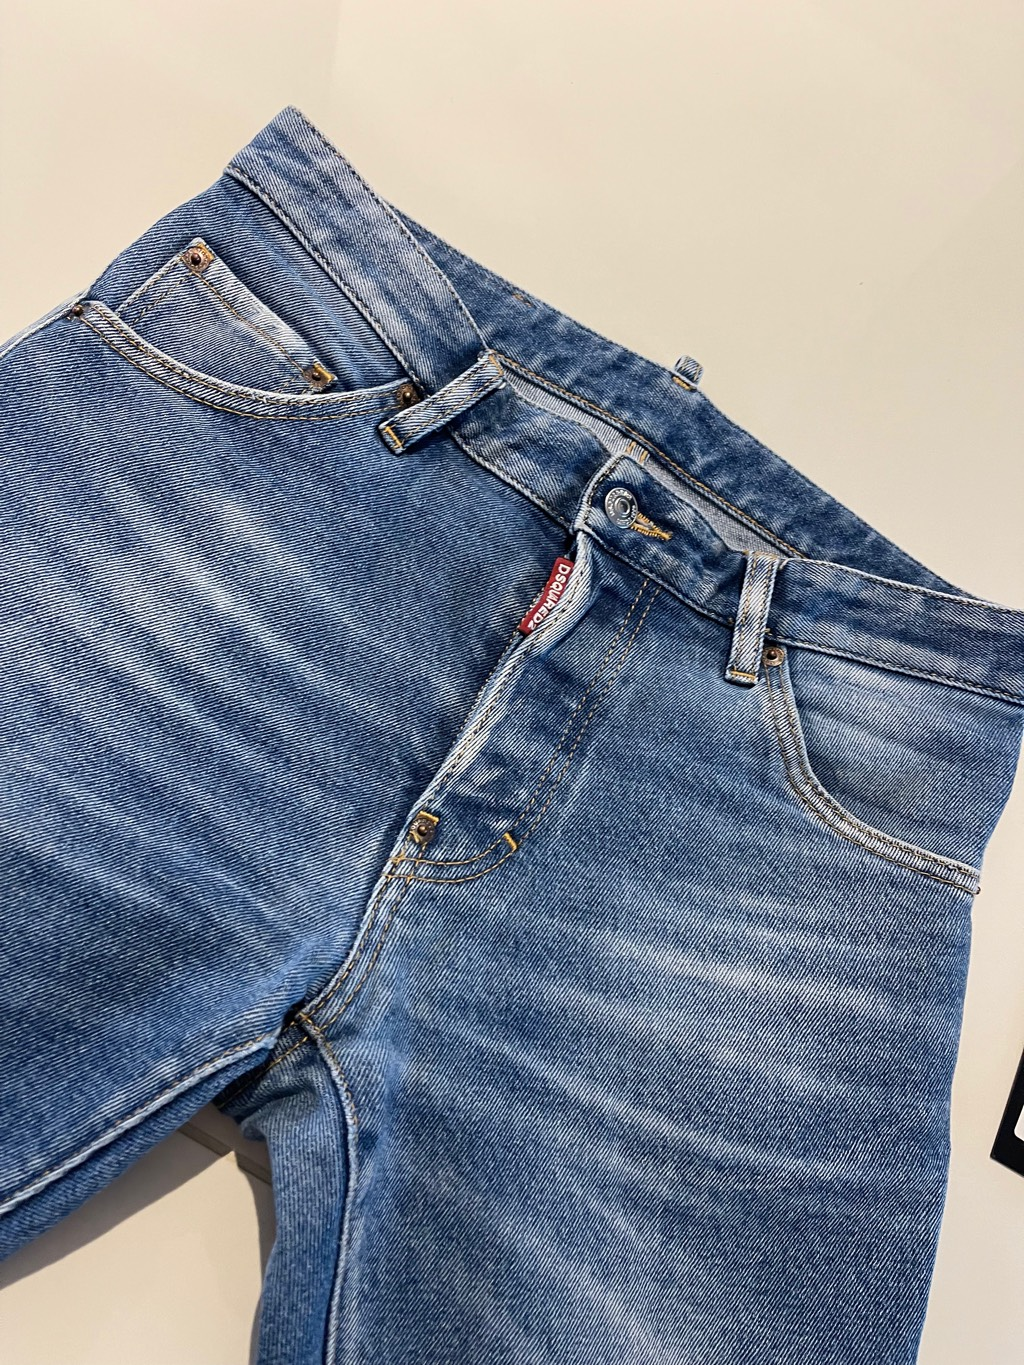 DSQUARED2 Cool Guy jeans, sz. 44Dsquared23